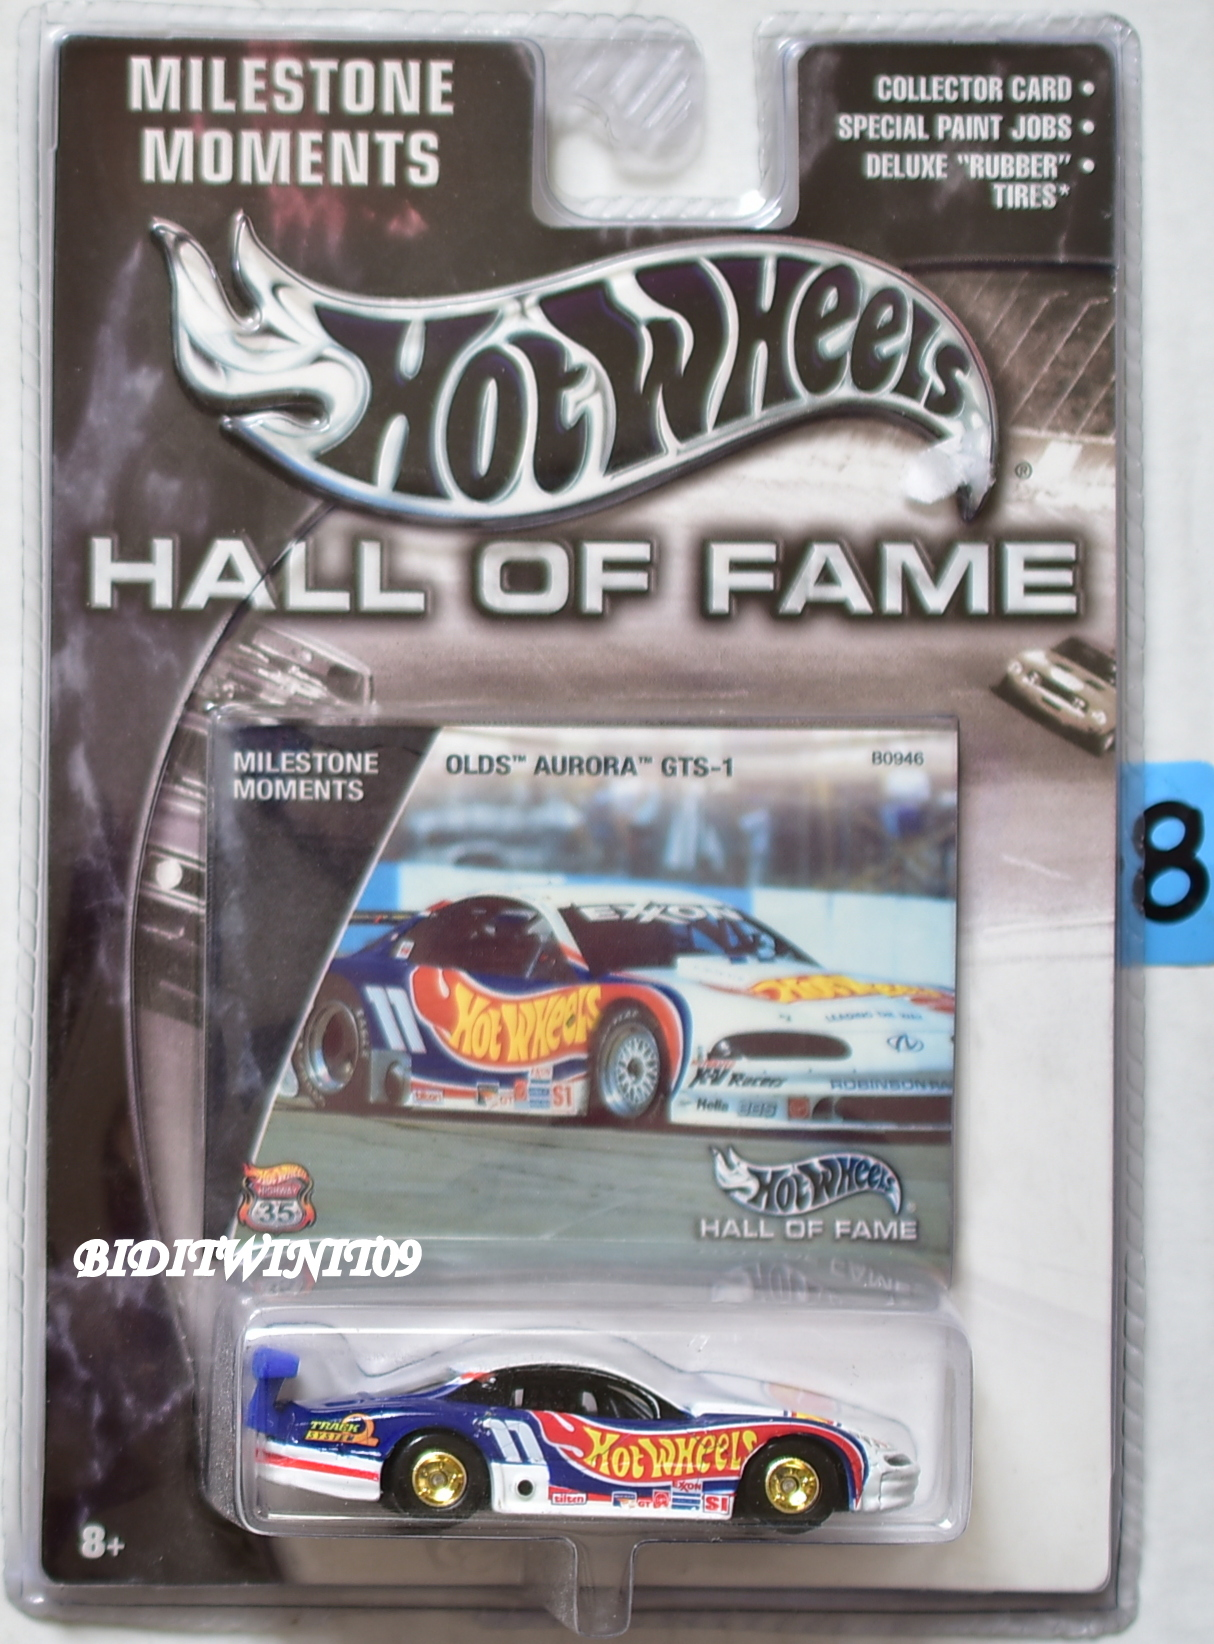 HOT WHEELS HALL OF FAME OLDS AURORA GTS-1 MILESTONE MOMENTS